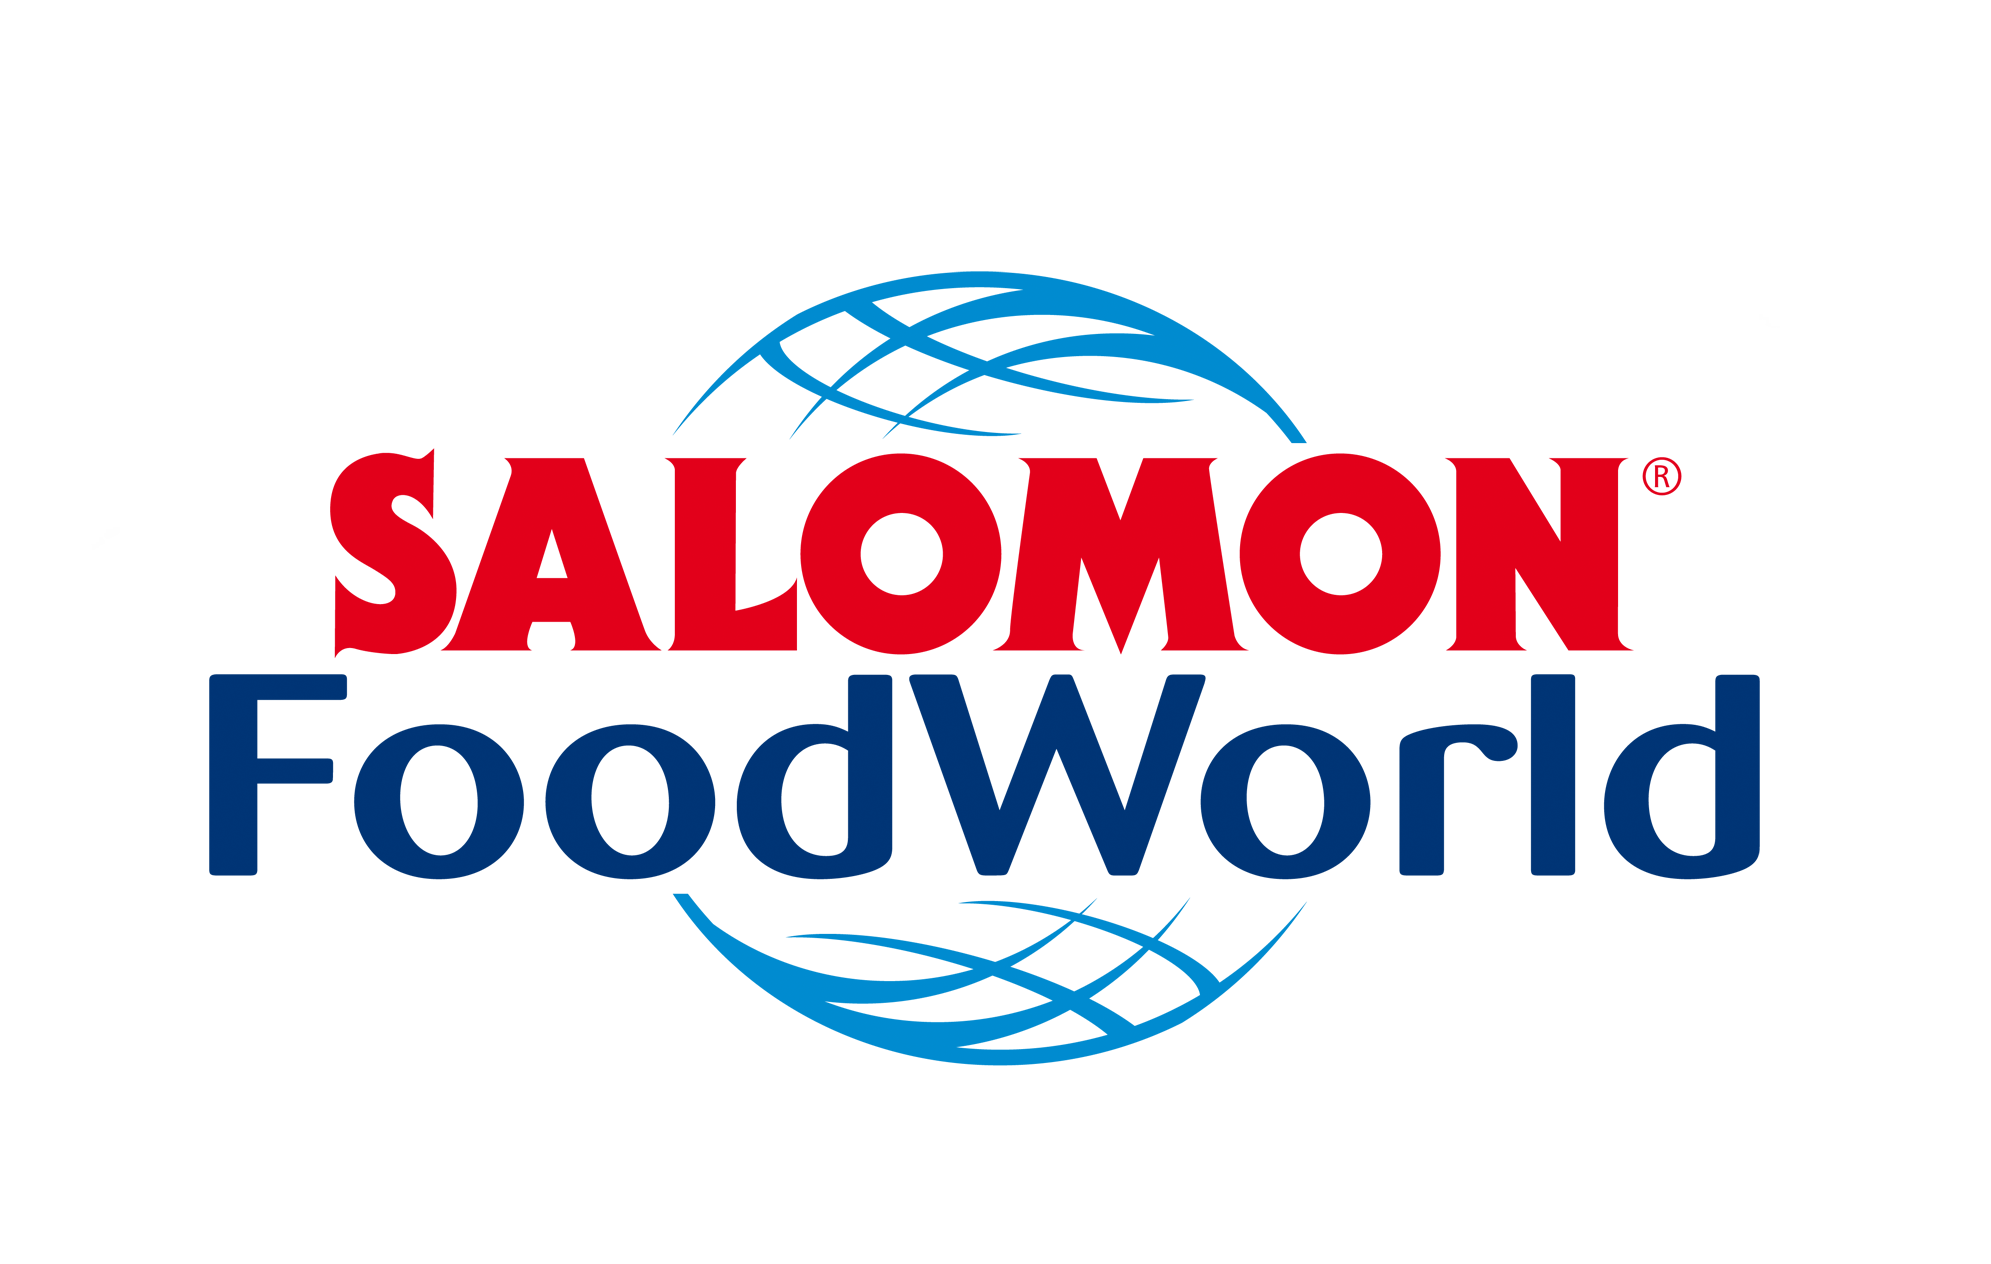 Salomon Food